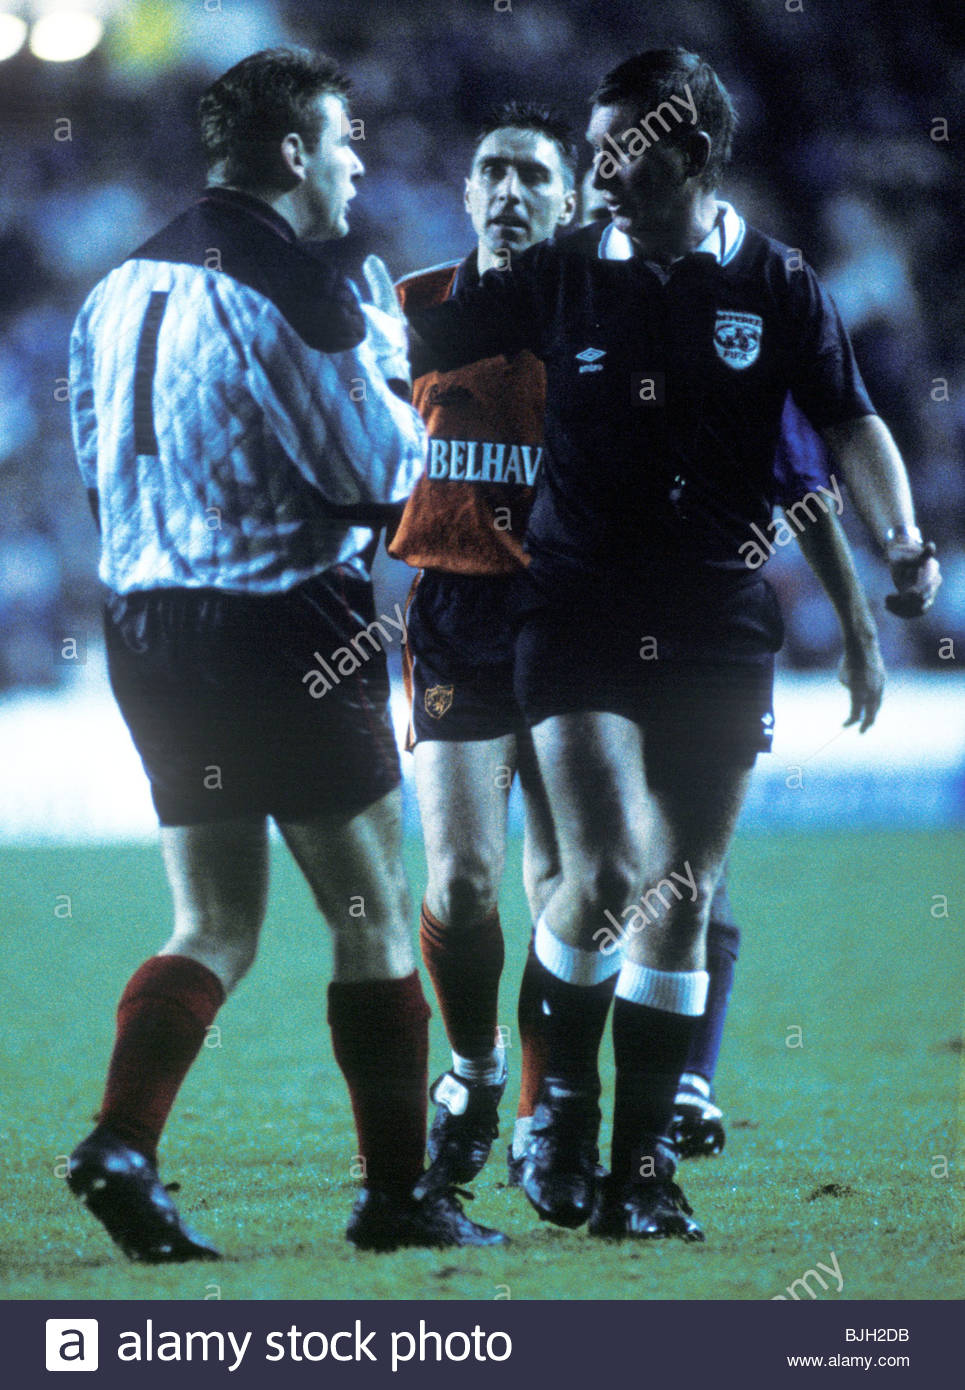 21/12/91 PREMIER DIVISION RANGERS V DUNDEE UTD (2-0) IBROX - GLASGOW Rangers goalkeeper Andy Goram airs his views - Stock Image